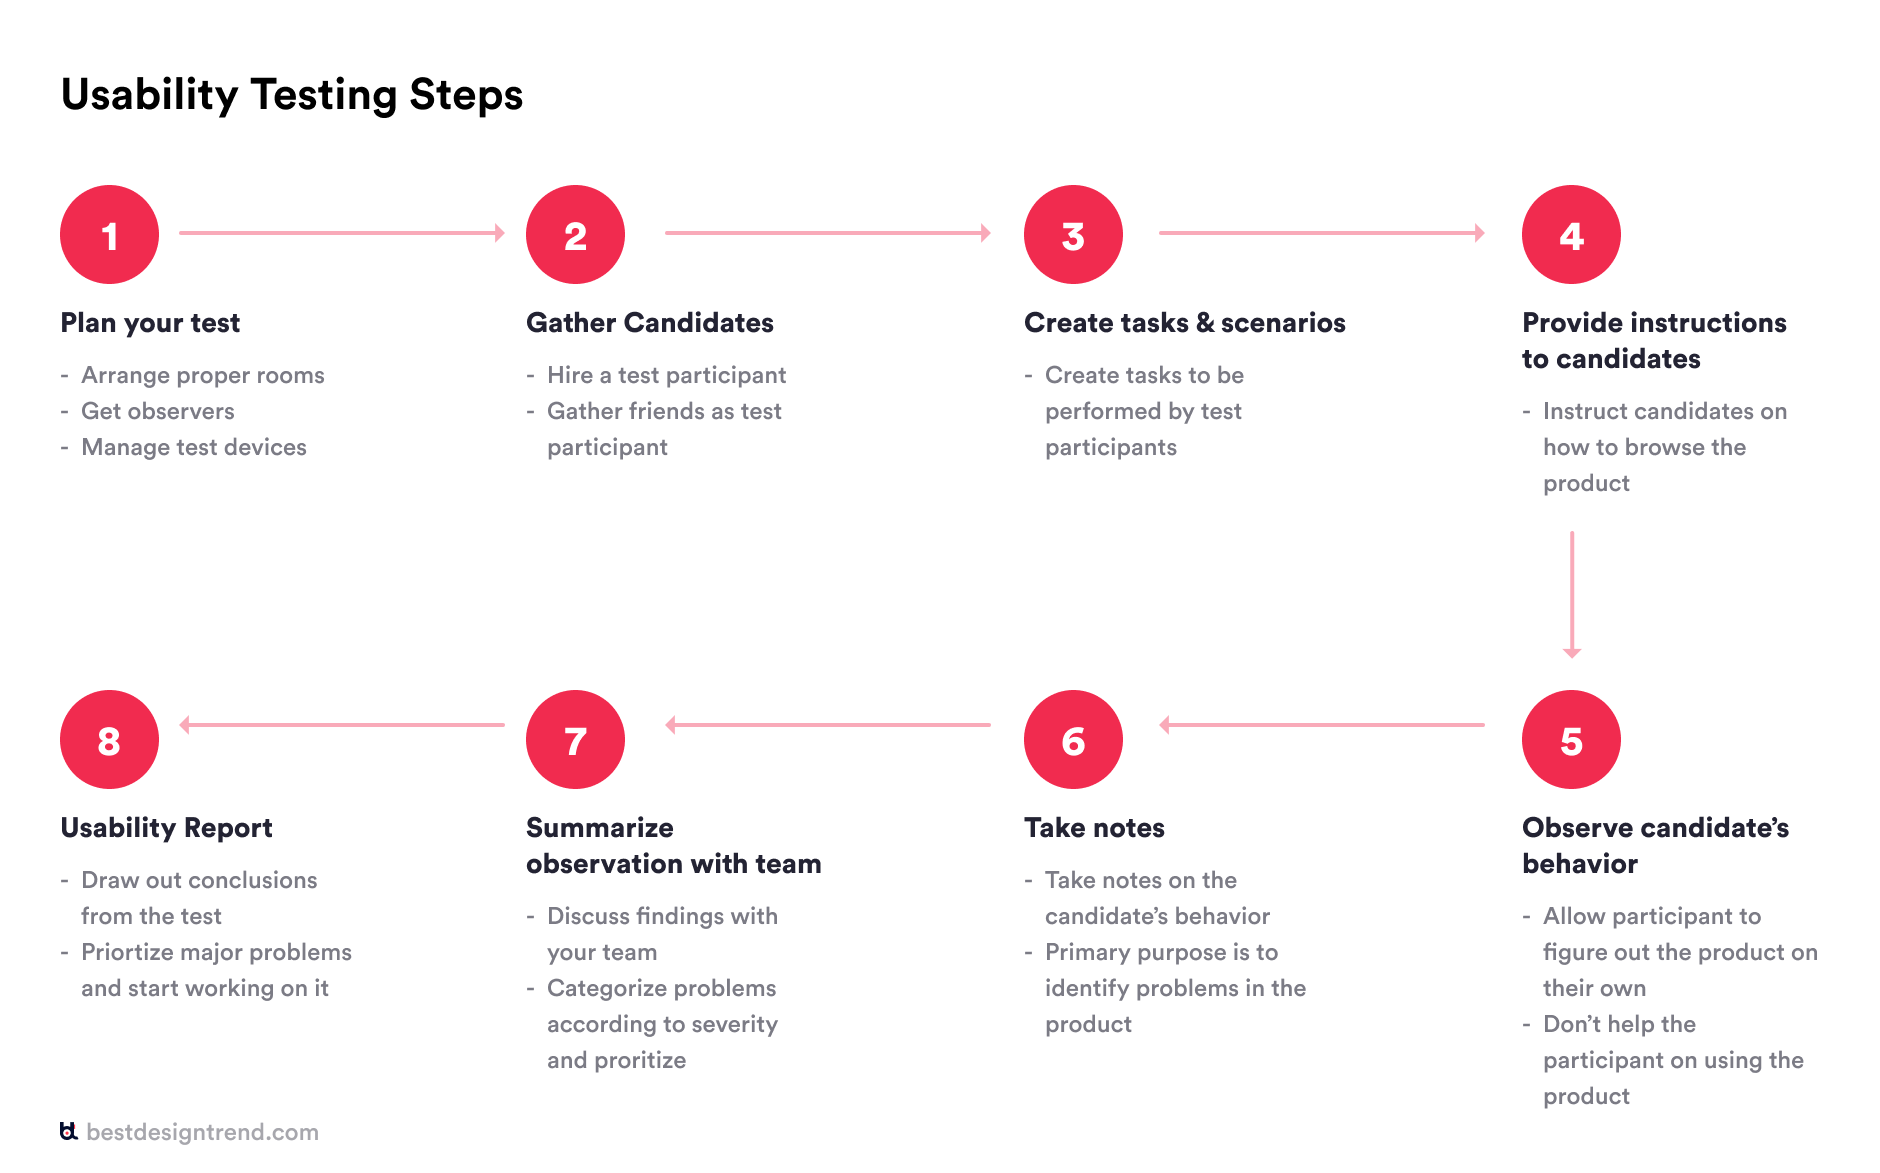 8 steps to perform usability testing